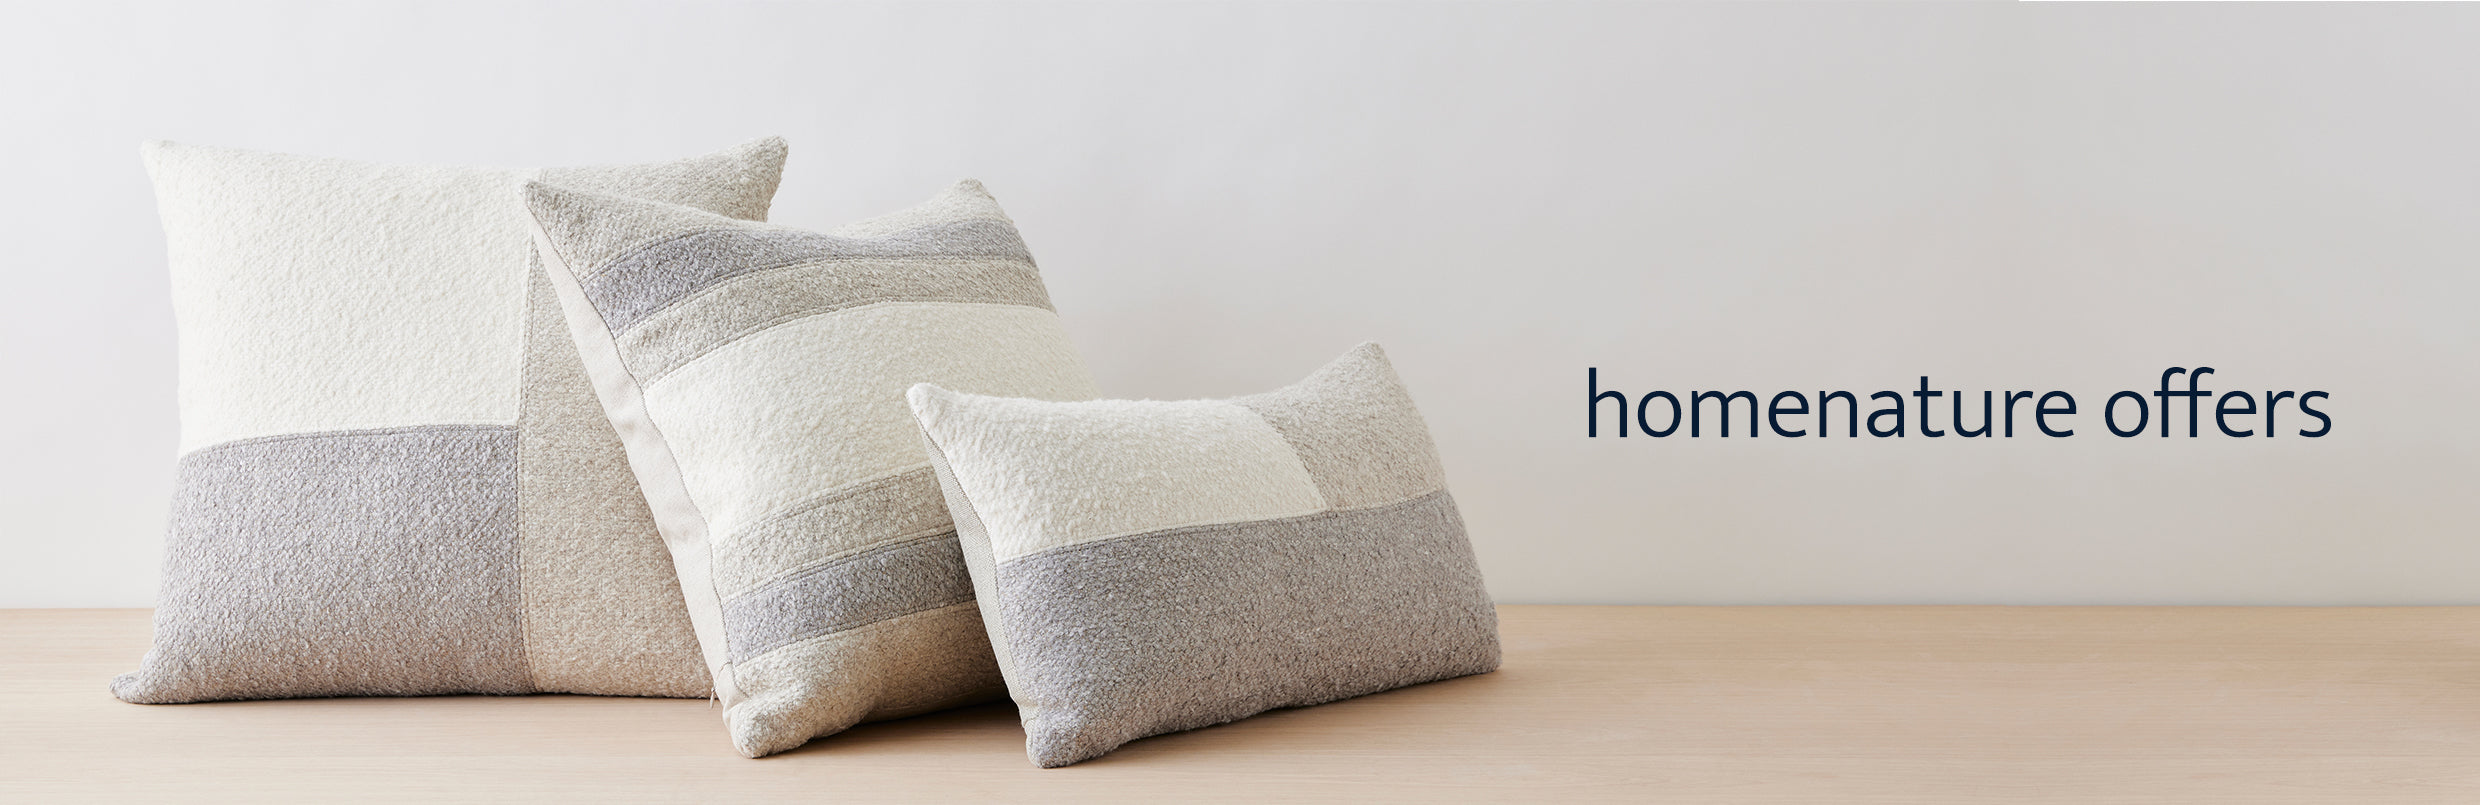 promotional offers from homenature